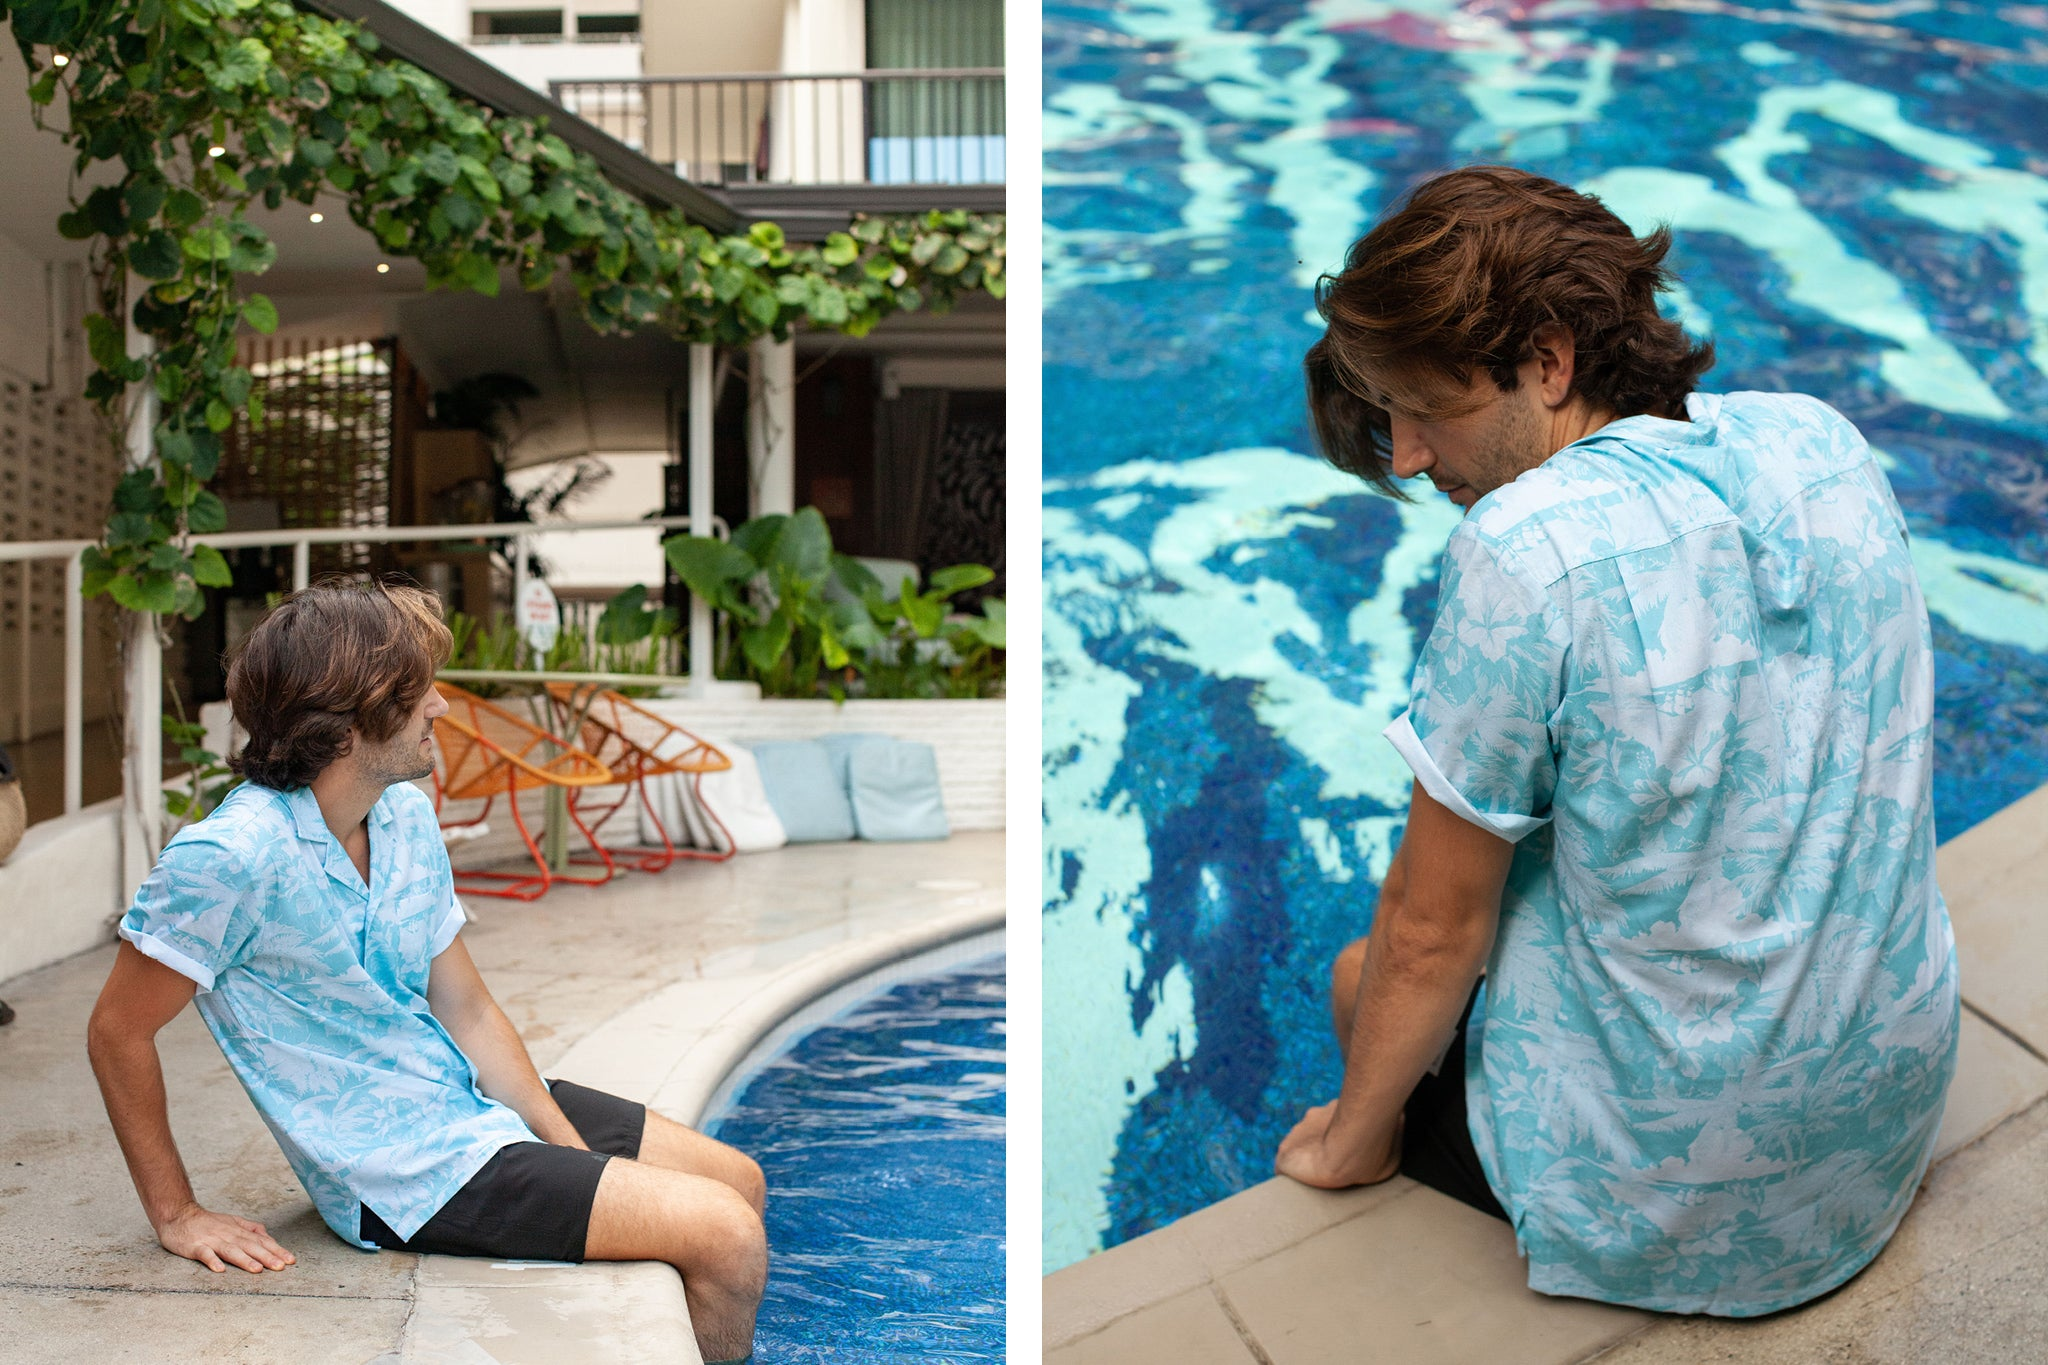 Man wearing blue resort shirt by a pool in Hawaii